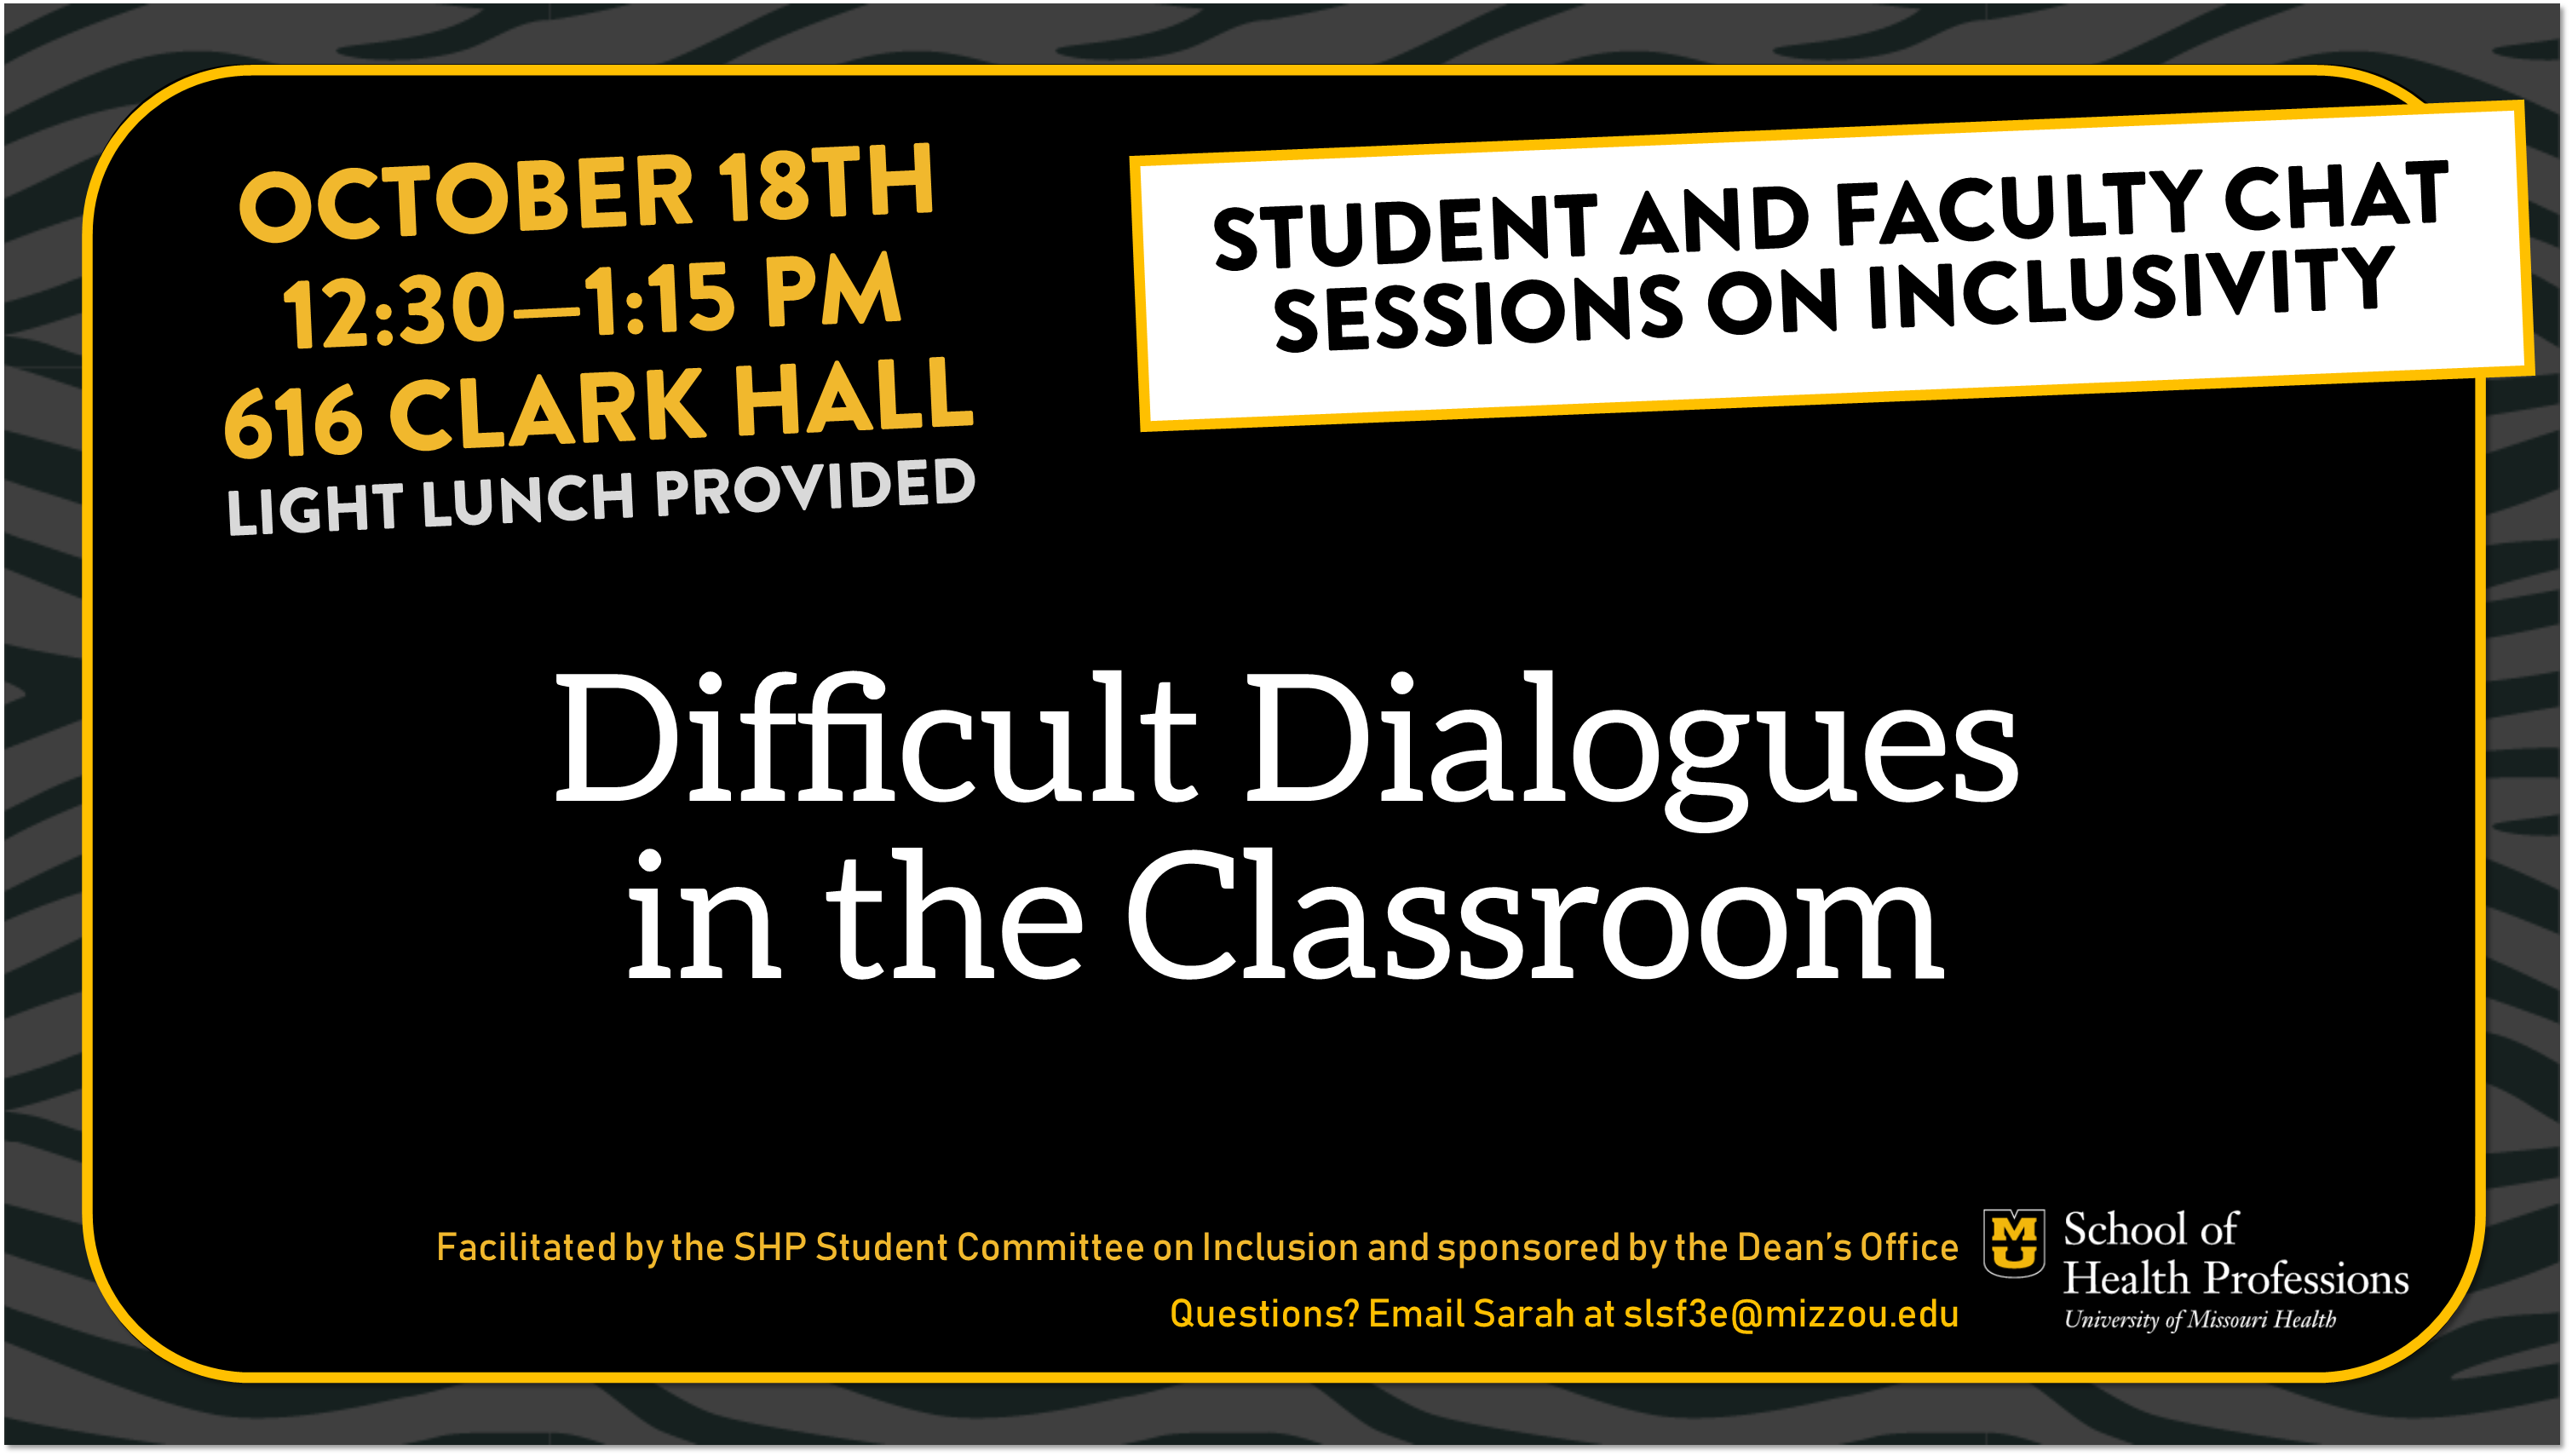 Student and Faculty Chat Session on Inclusivity